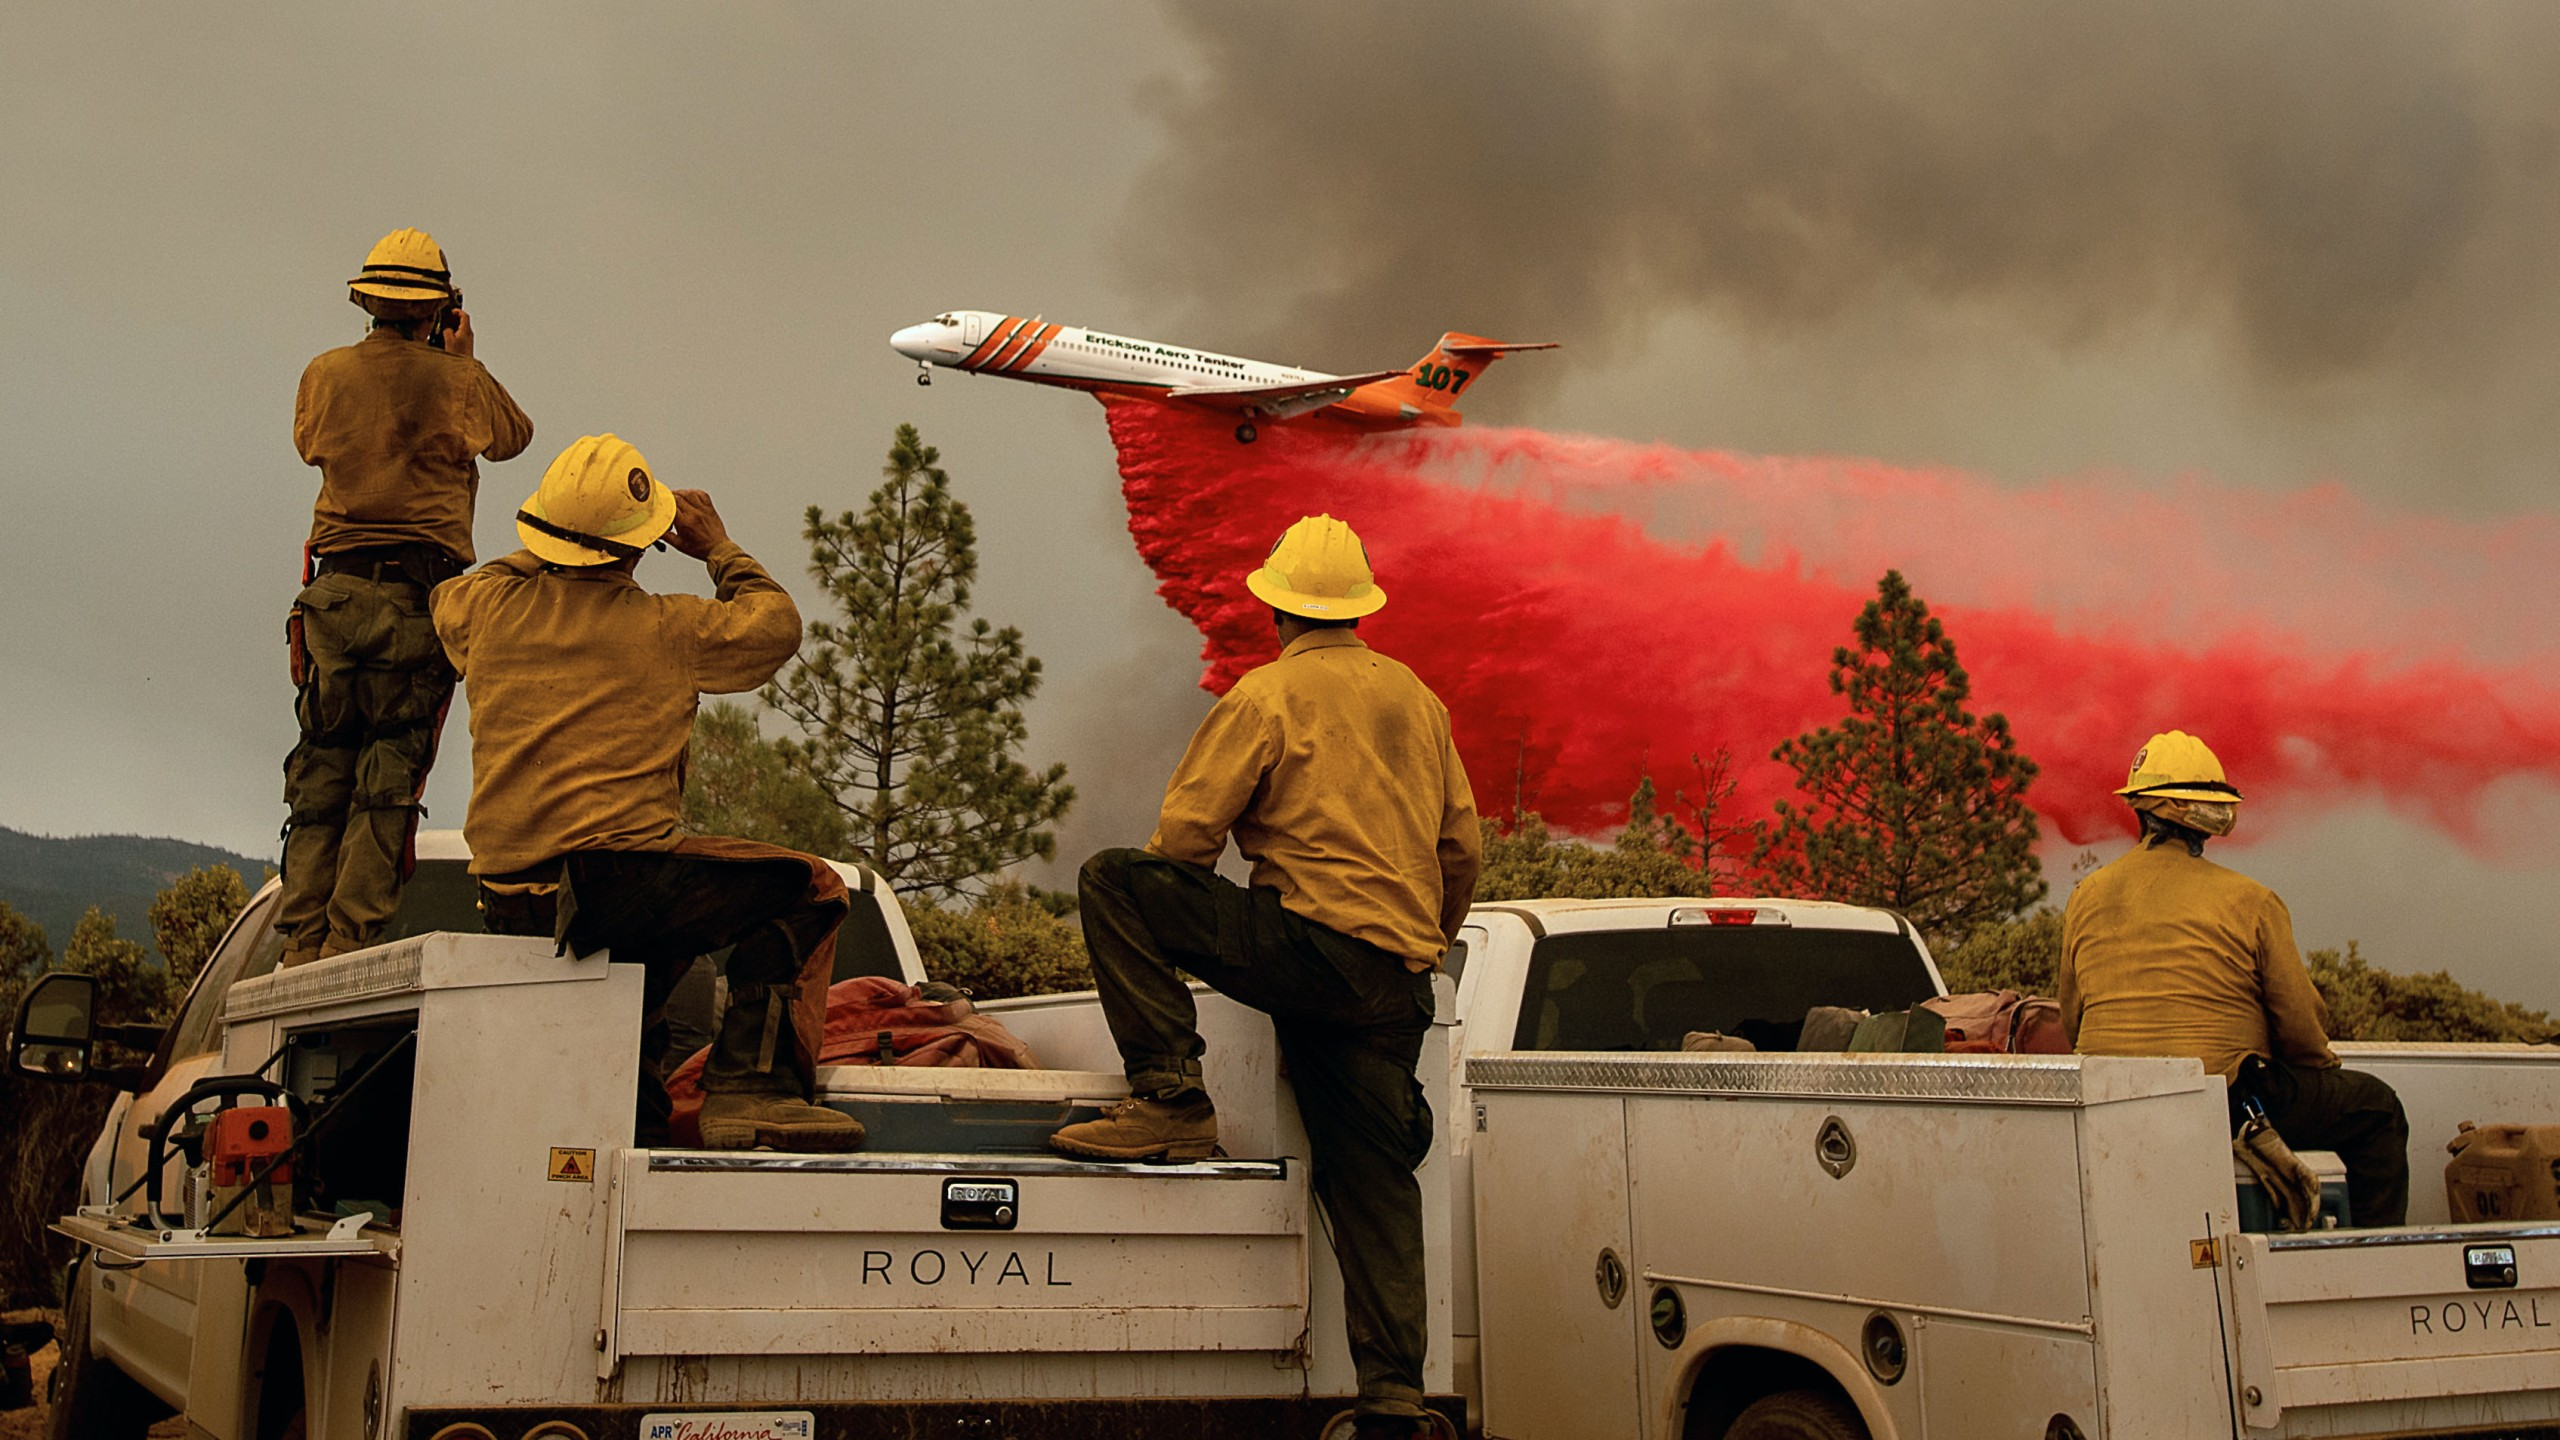 Firefighters watch as an air tanker drops retardant while battling the Ferguson fire in the Stanislaus National Forest, near Yosemite National Park, California on July 21, 2018. (Credit: NOAH BERGER/AFP/Getty Images)